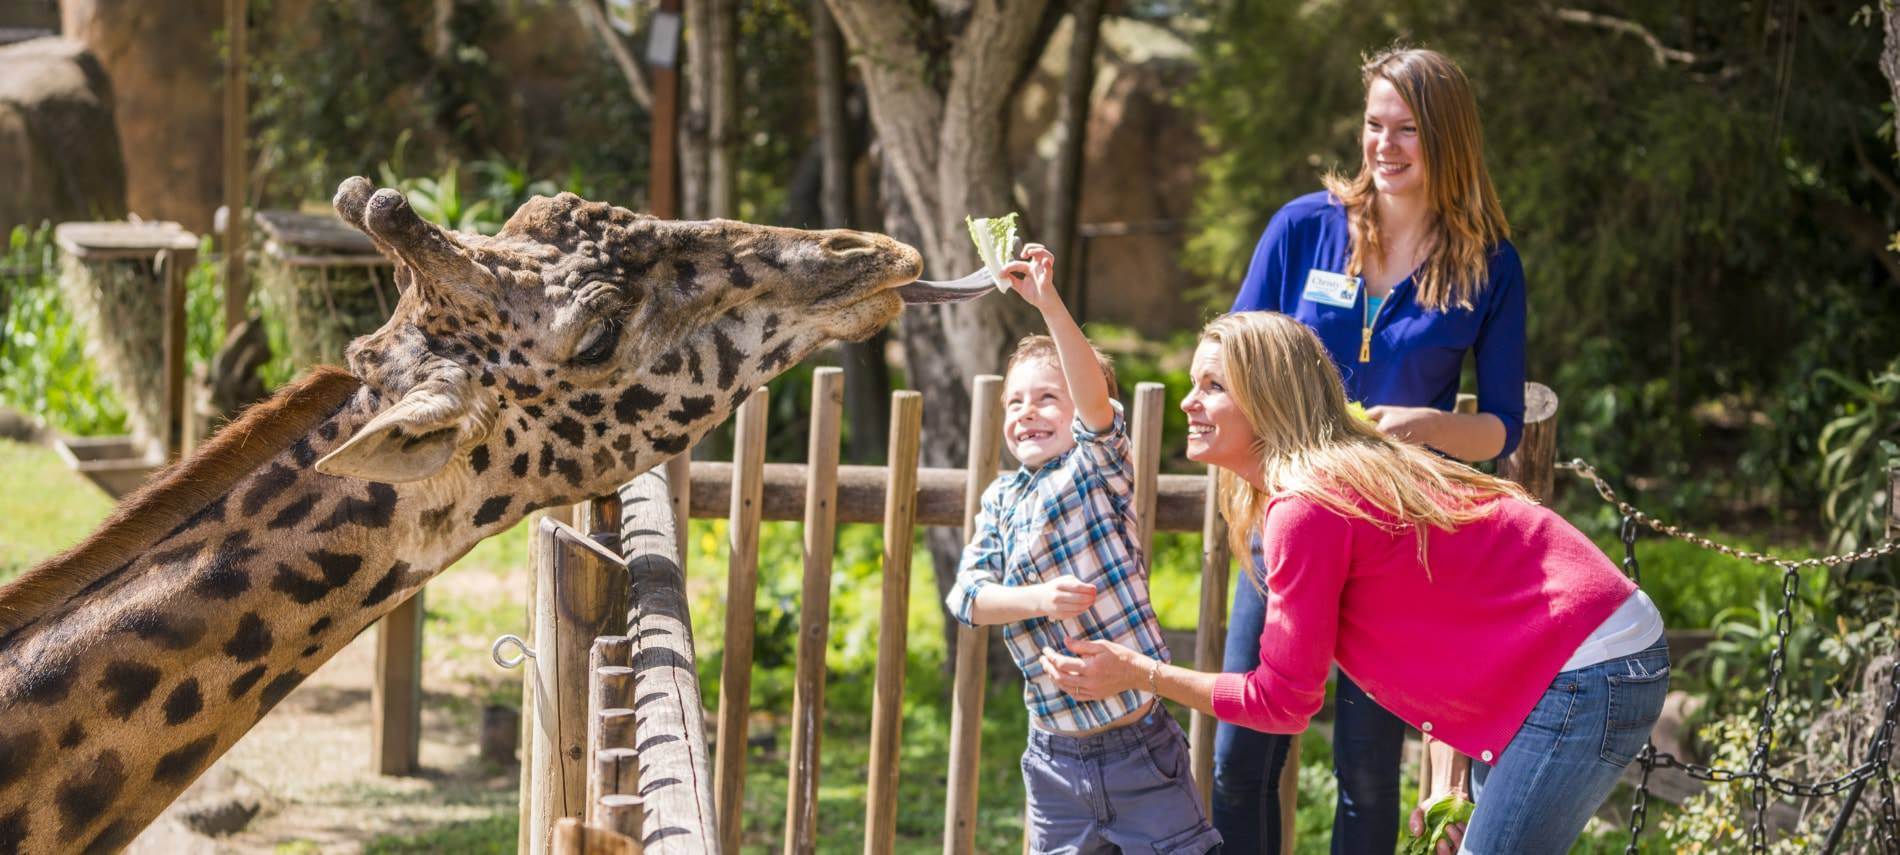 Mother and her young son with a zoo worker while son feeds a giraffe